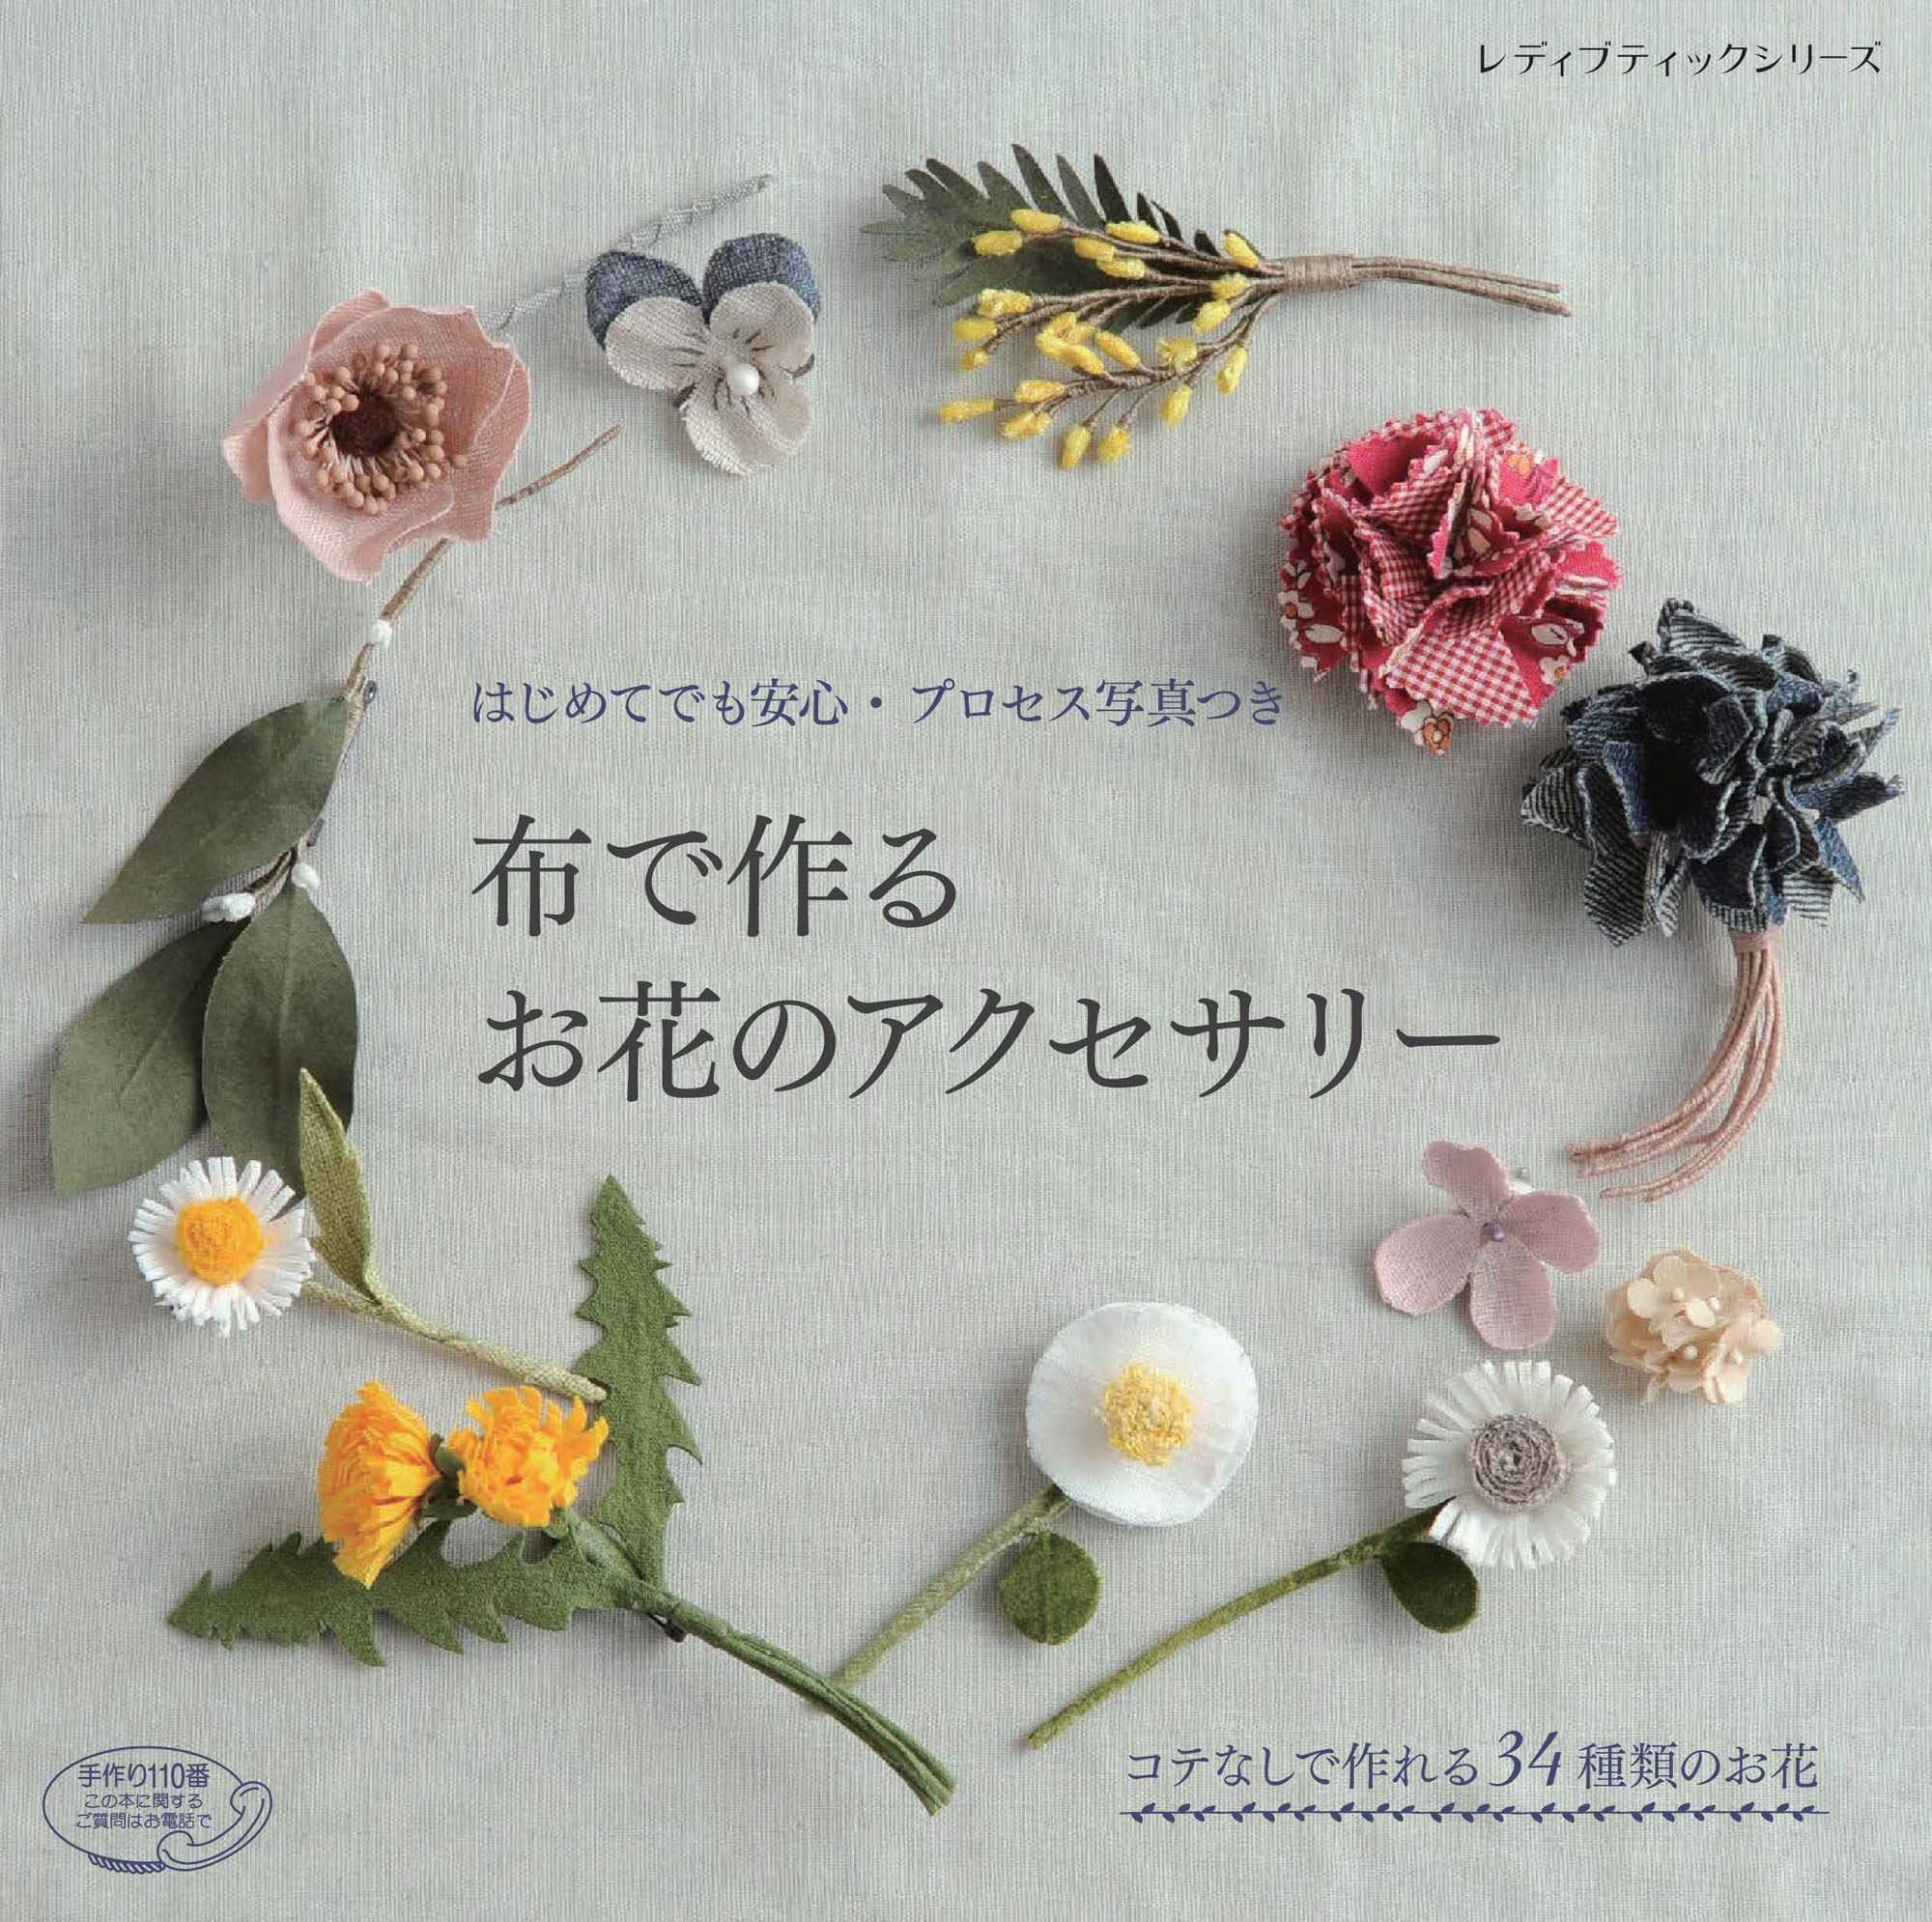 Make cloth flowers of accessories